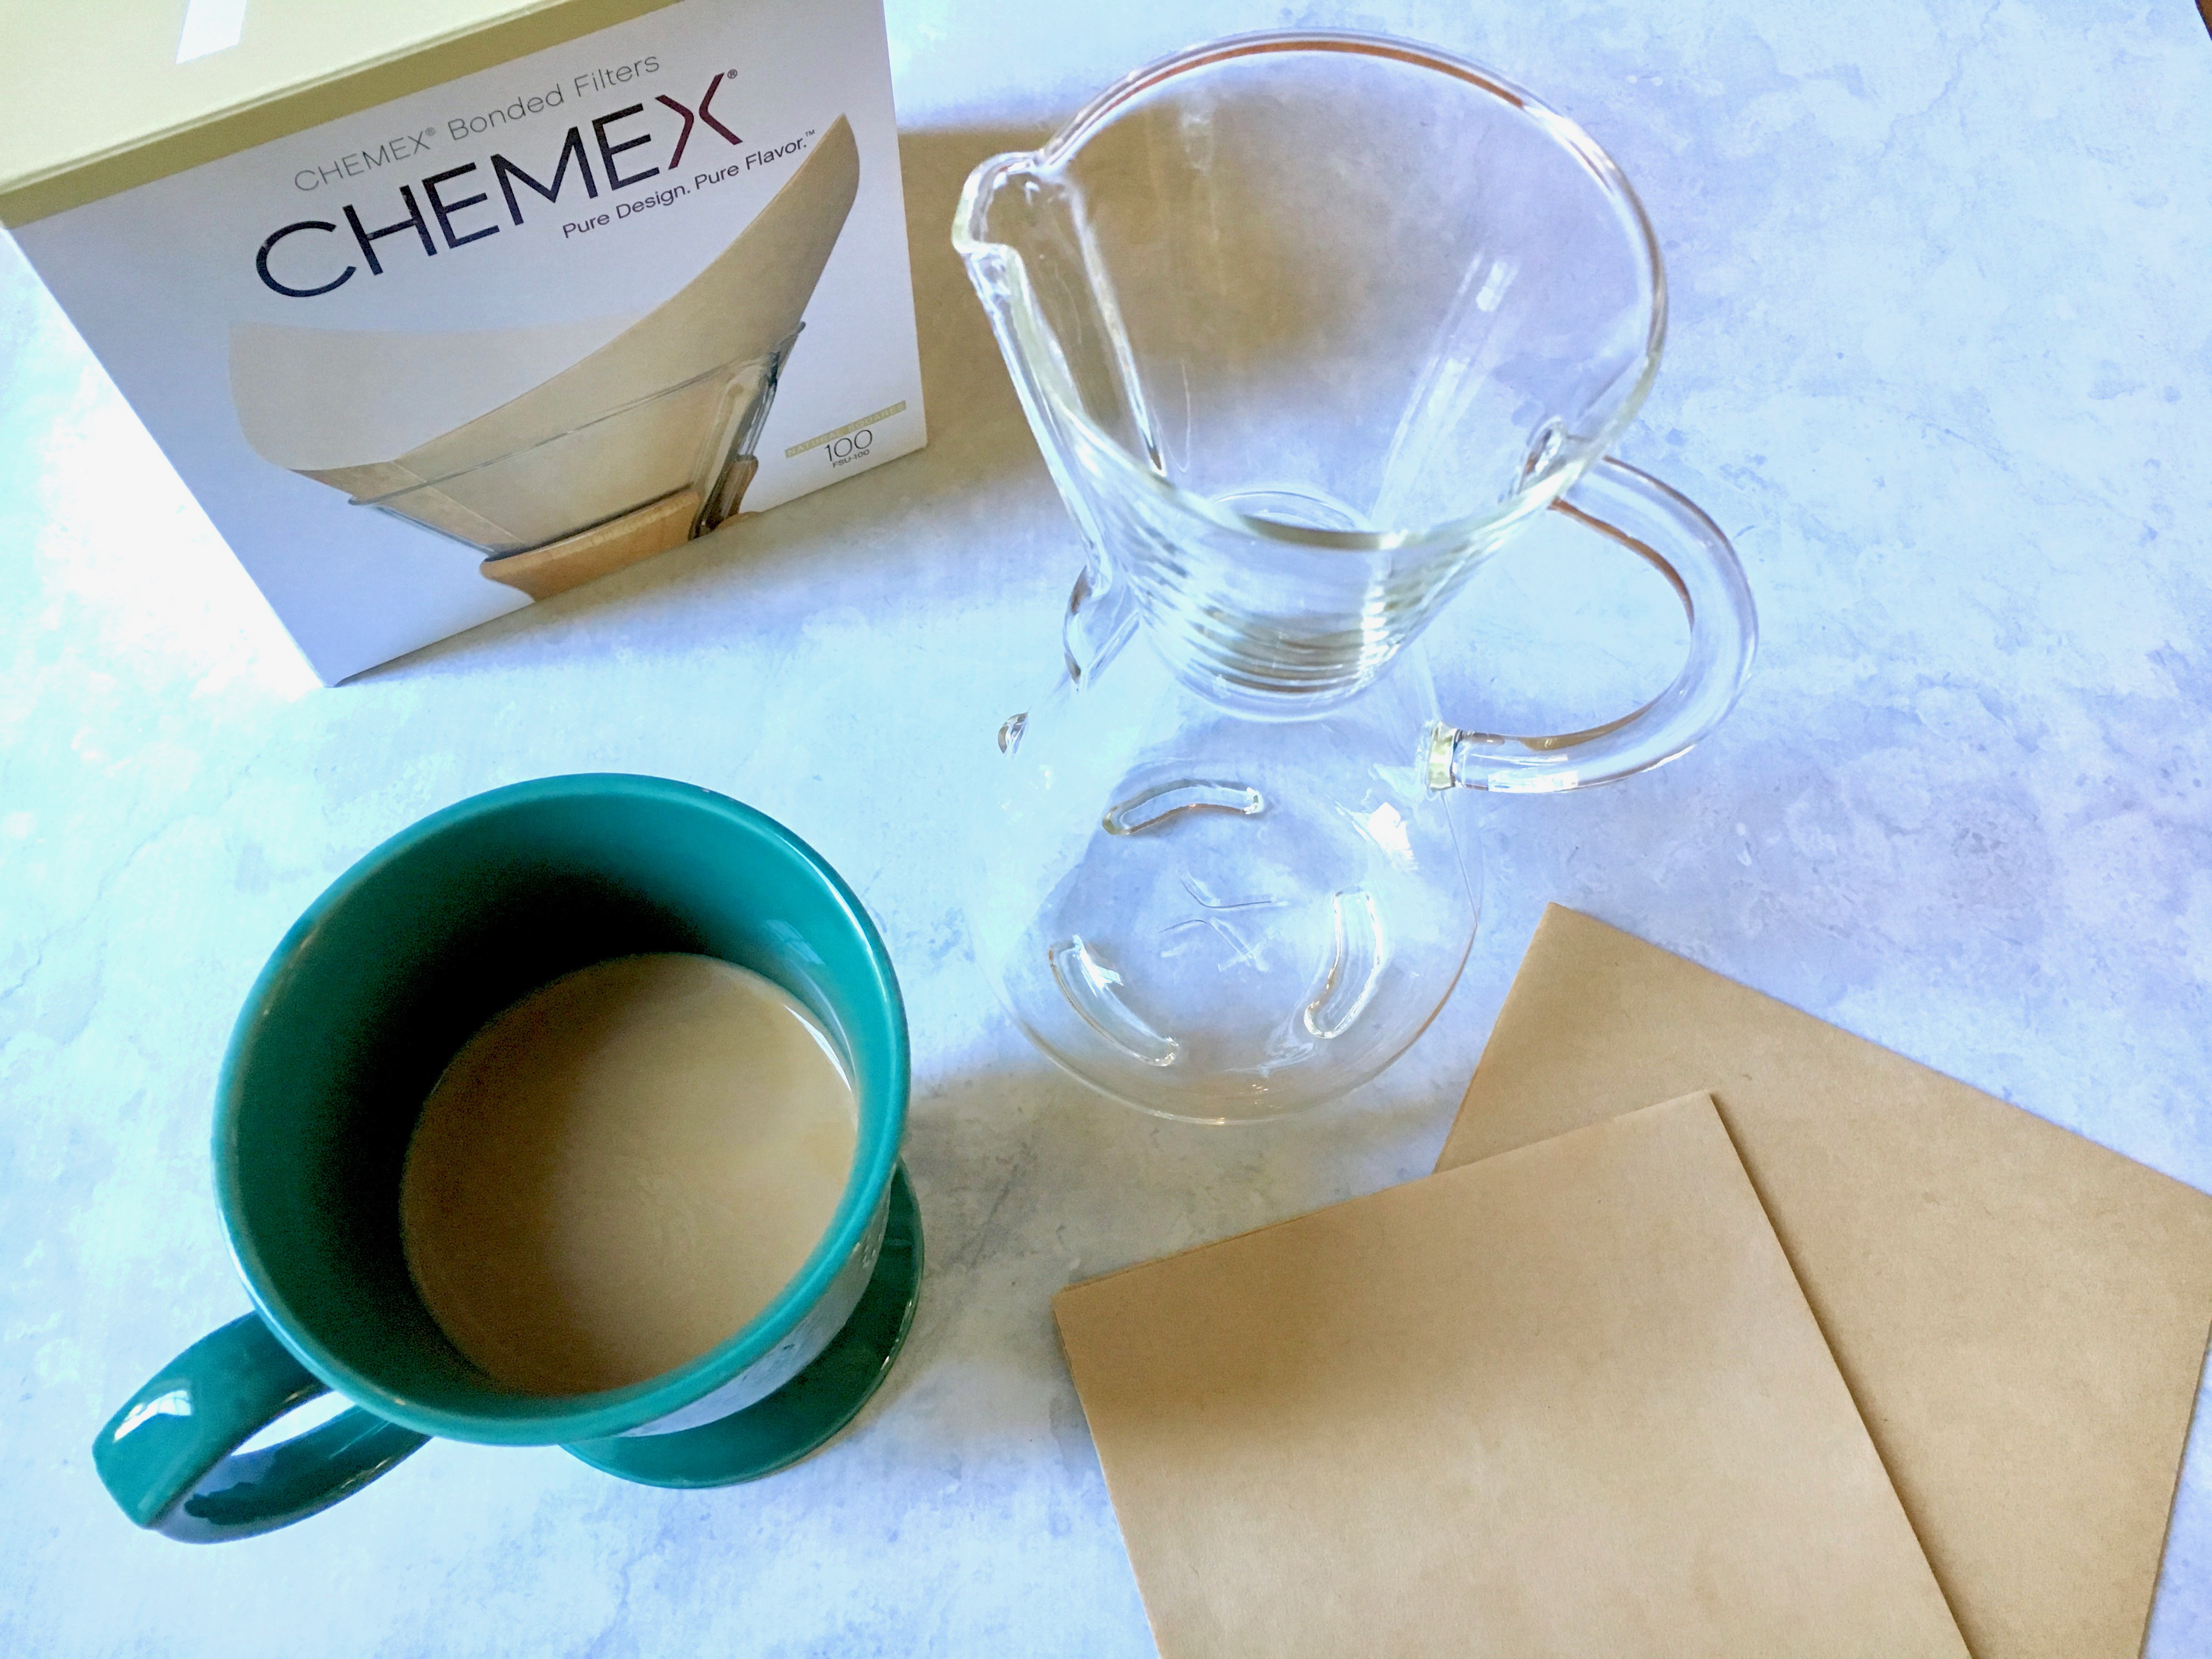 Chemex Pour Over Coffee Carafe And Filters